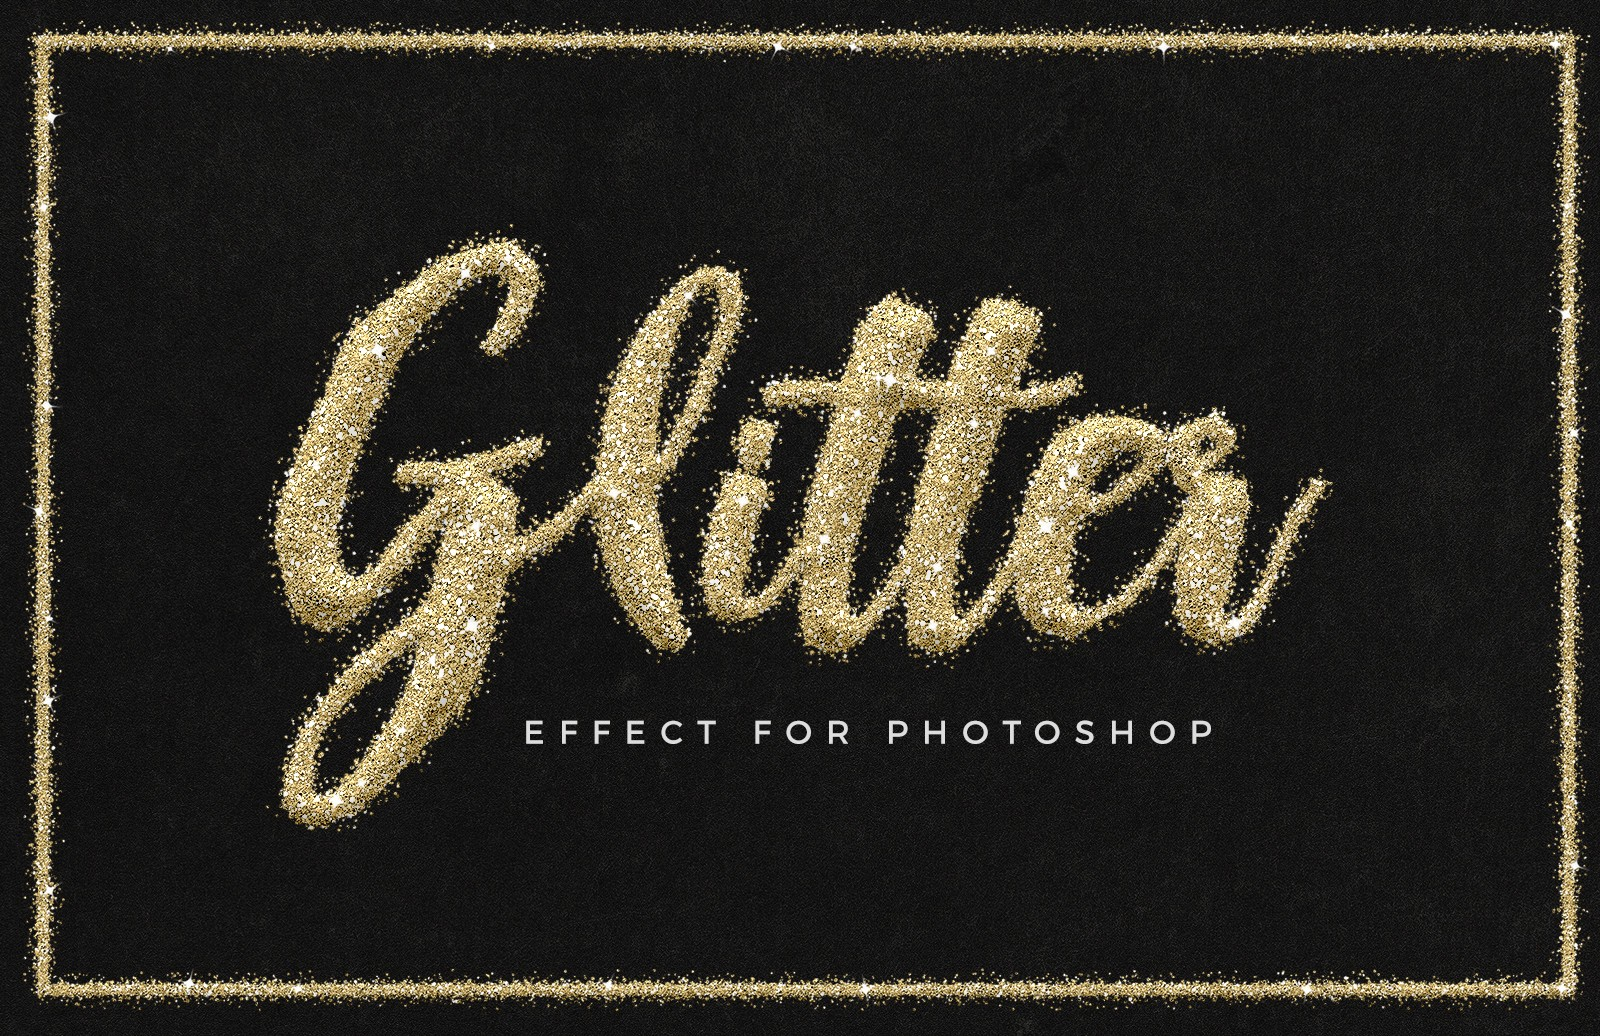 Glitter Text Effect For Photoshop Preview 1E